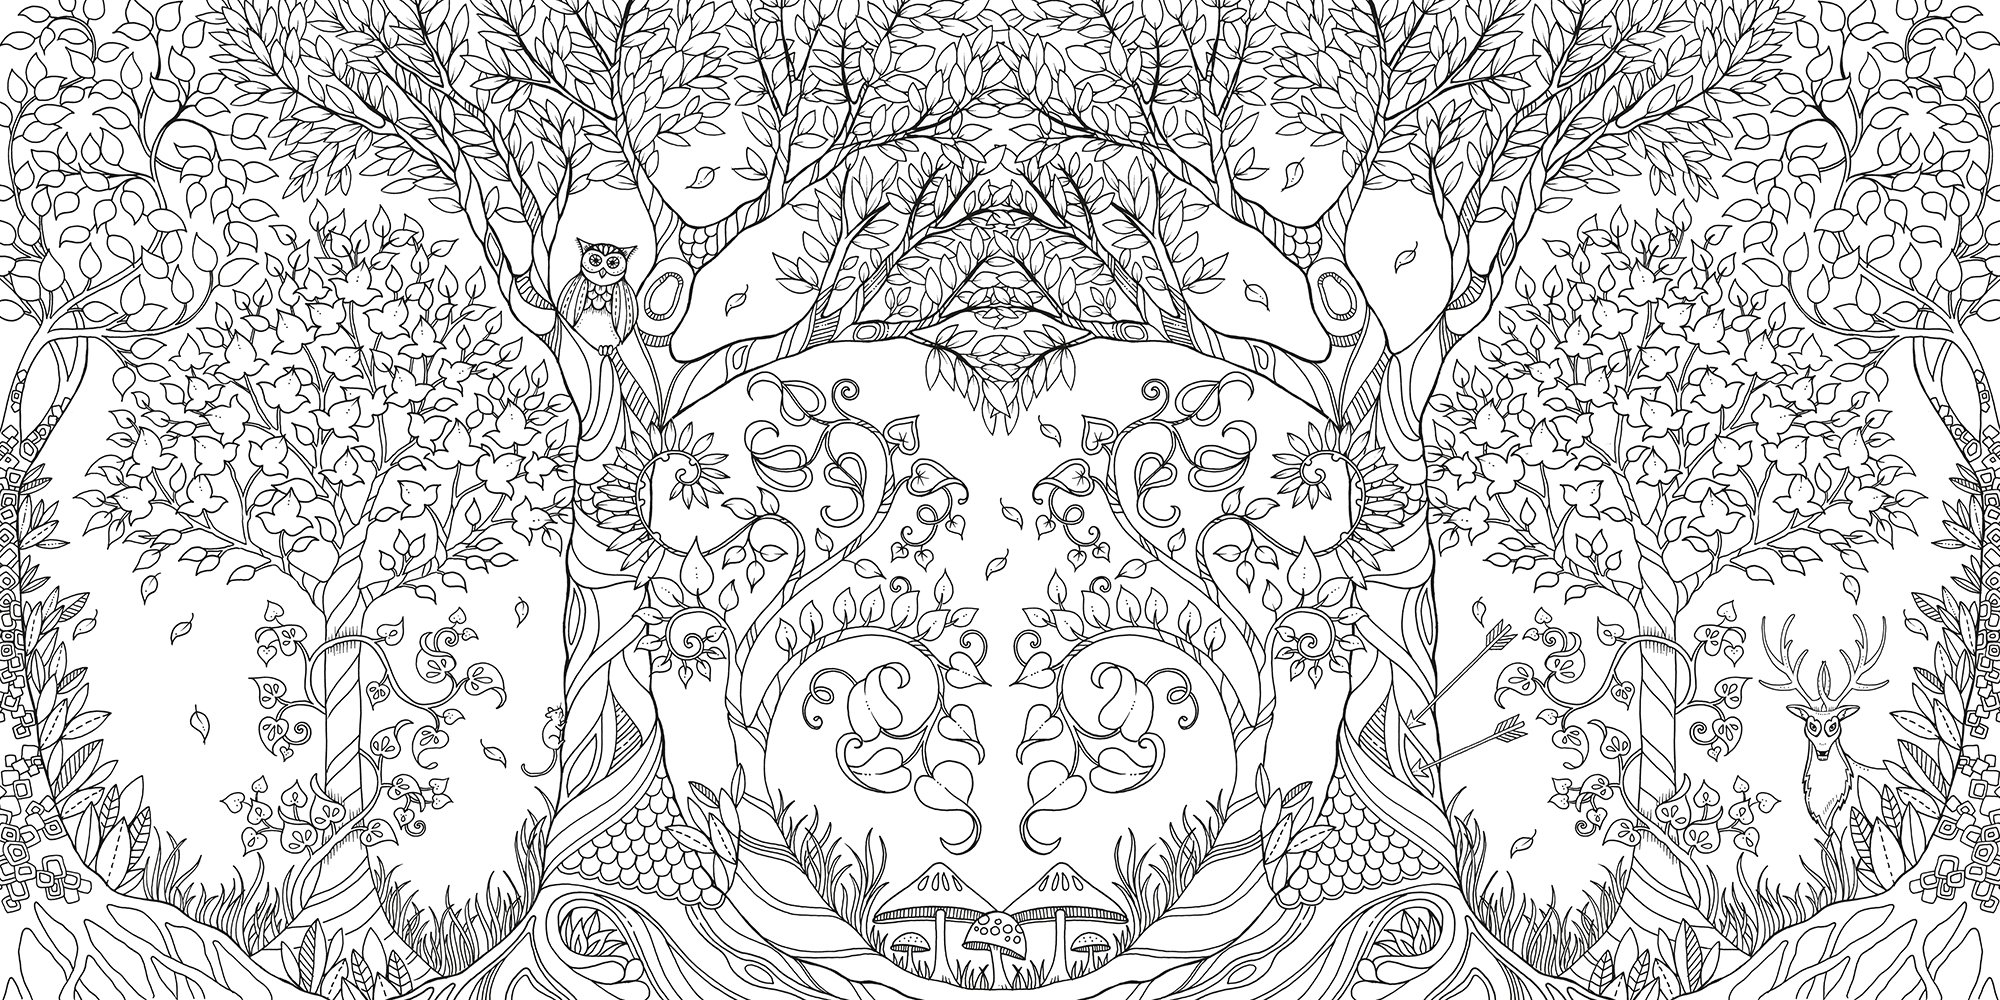 coloring book johanna : Amazon Com Enchanted Forest An Inky Quest Coloring Book 6063887956574 Johanna Basford Books